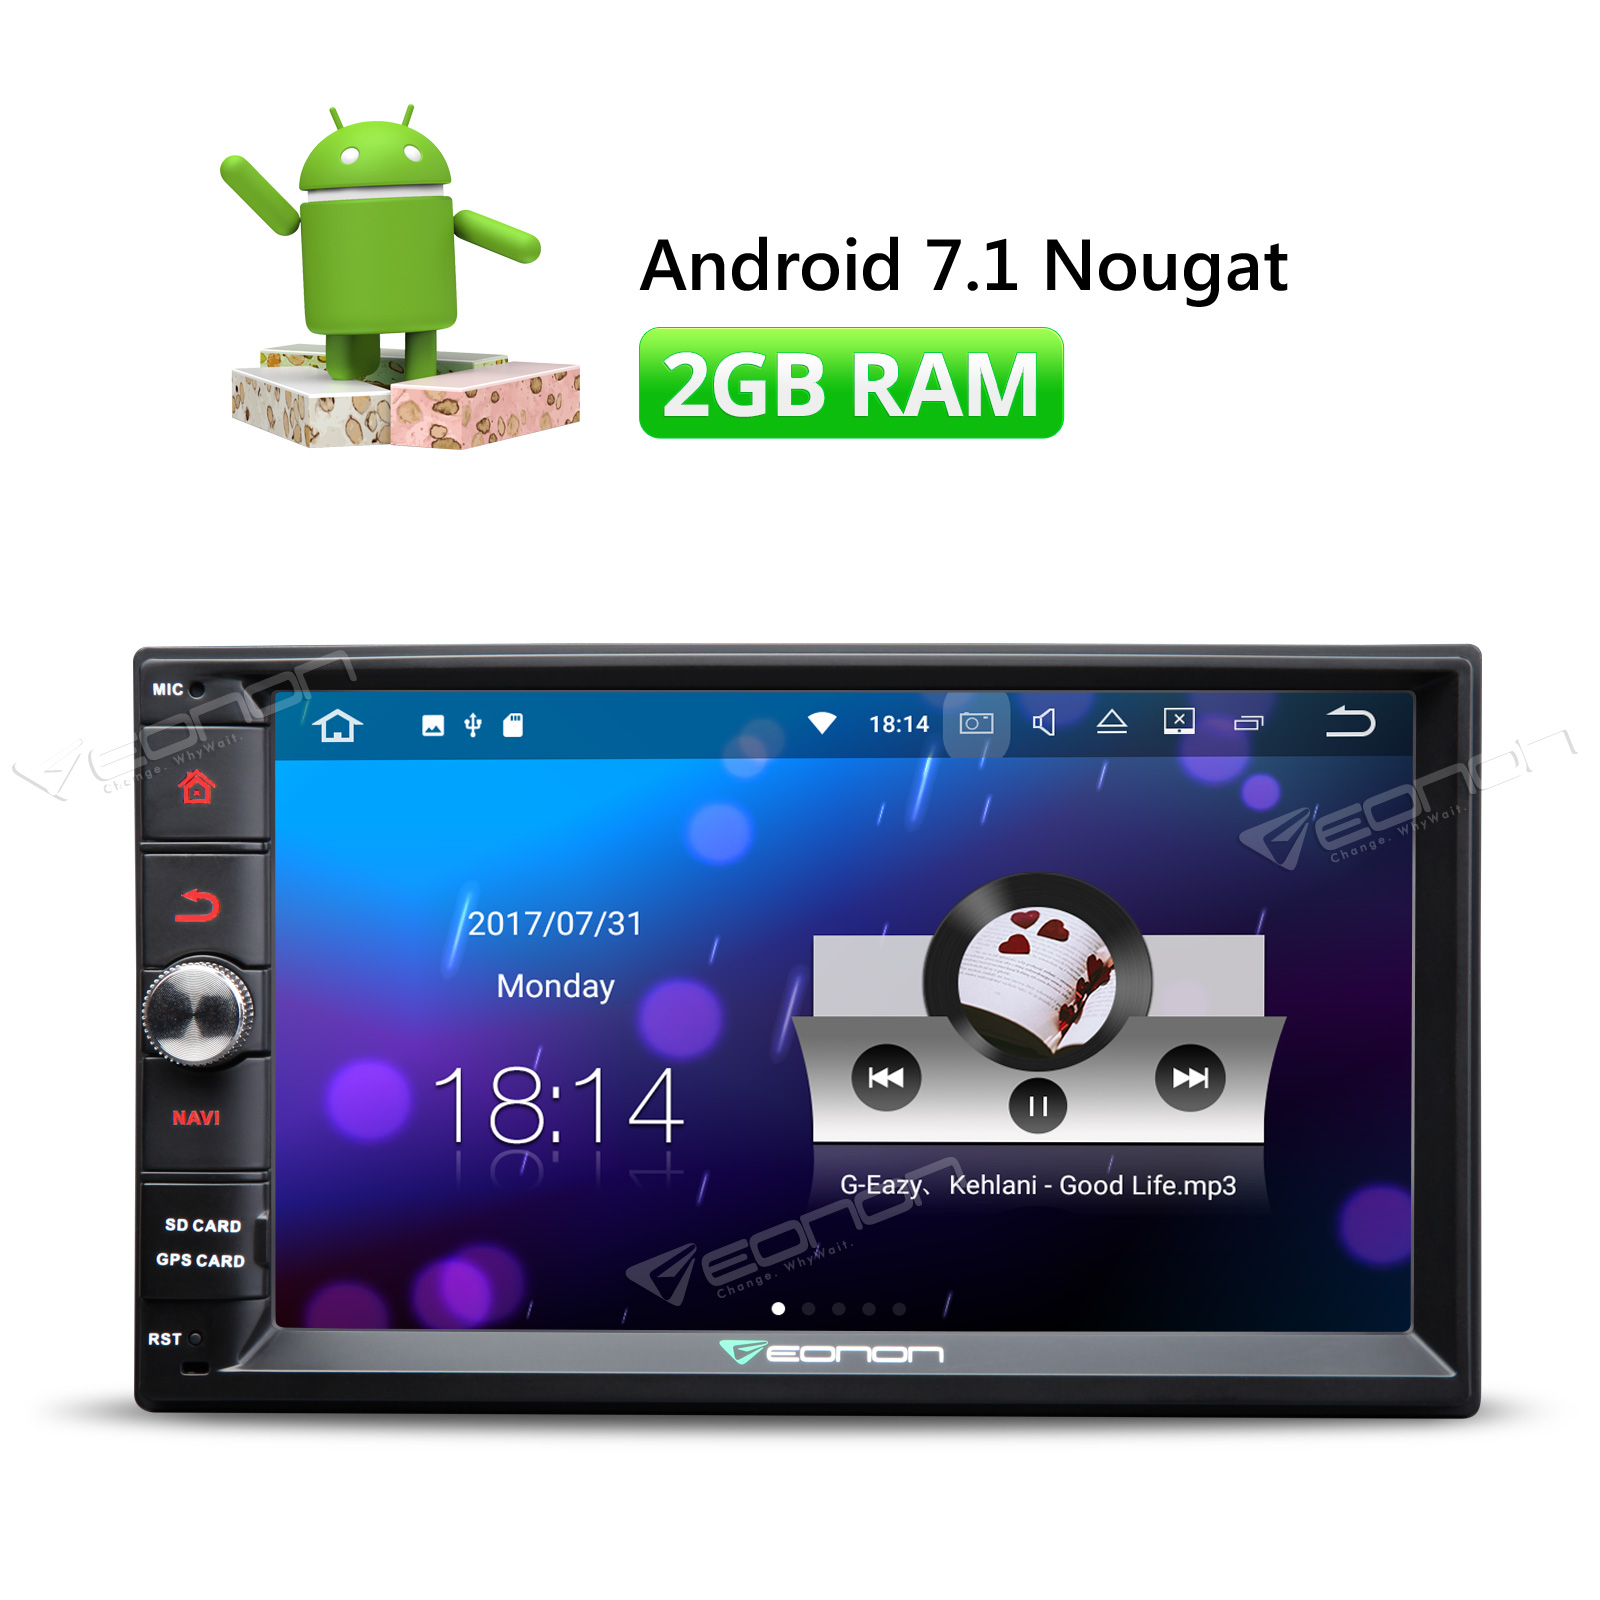 GPS Radio Head Unit BT DAB OBD 4G Wifi +CAMERA: US Eonon 2 Din Android 7.1  ... 1 DIN 7' Android 6.0 Car Radio Stereo GPS WiFi 3G .